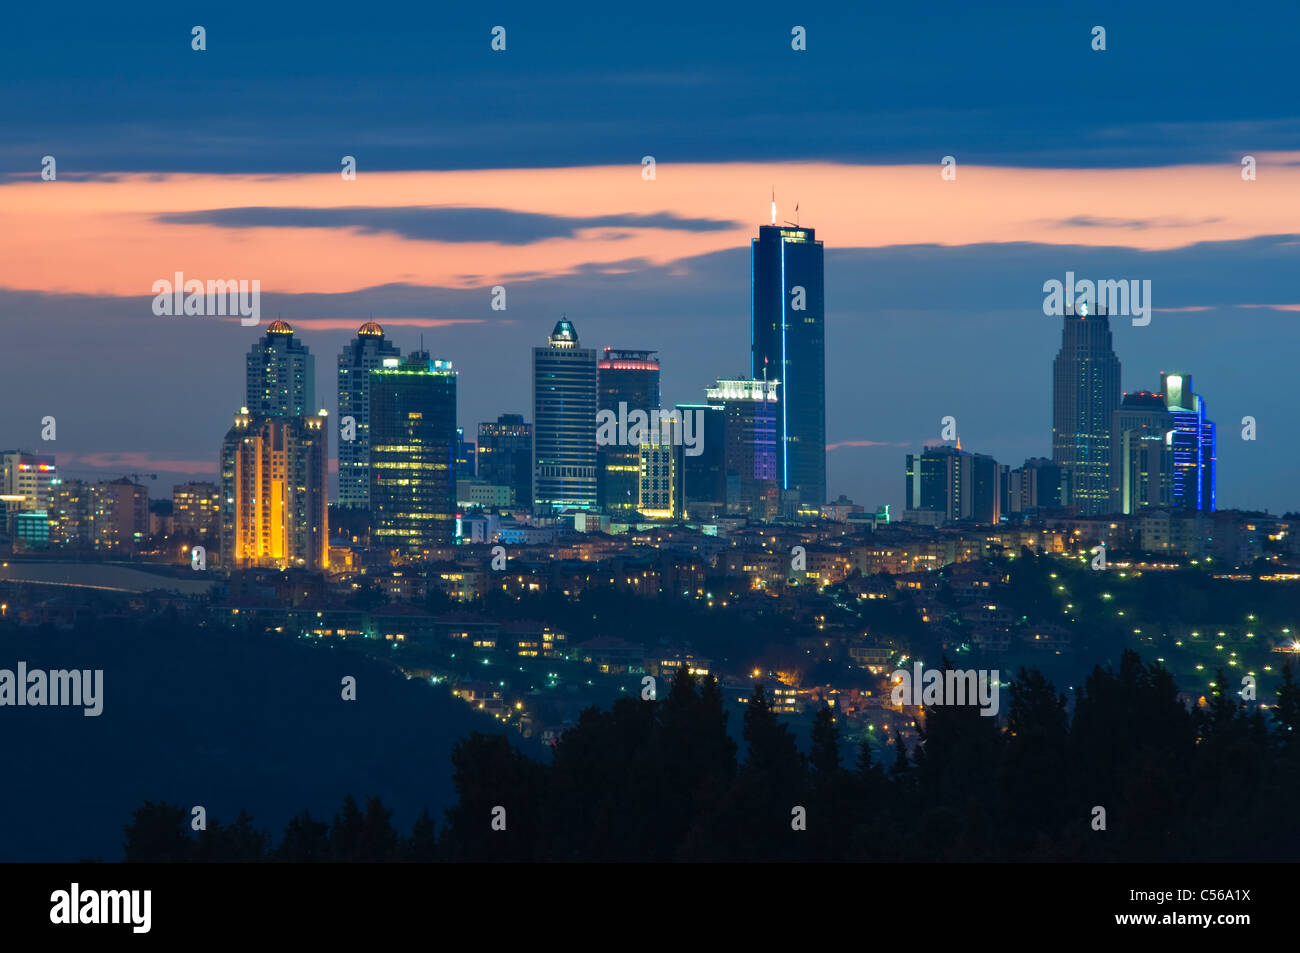 Skylines at night in istanbul,Turkey - Stock Image